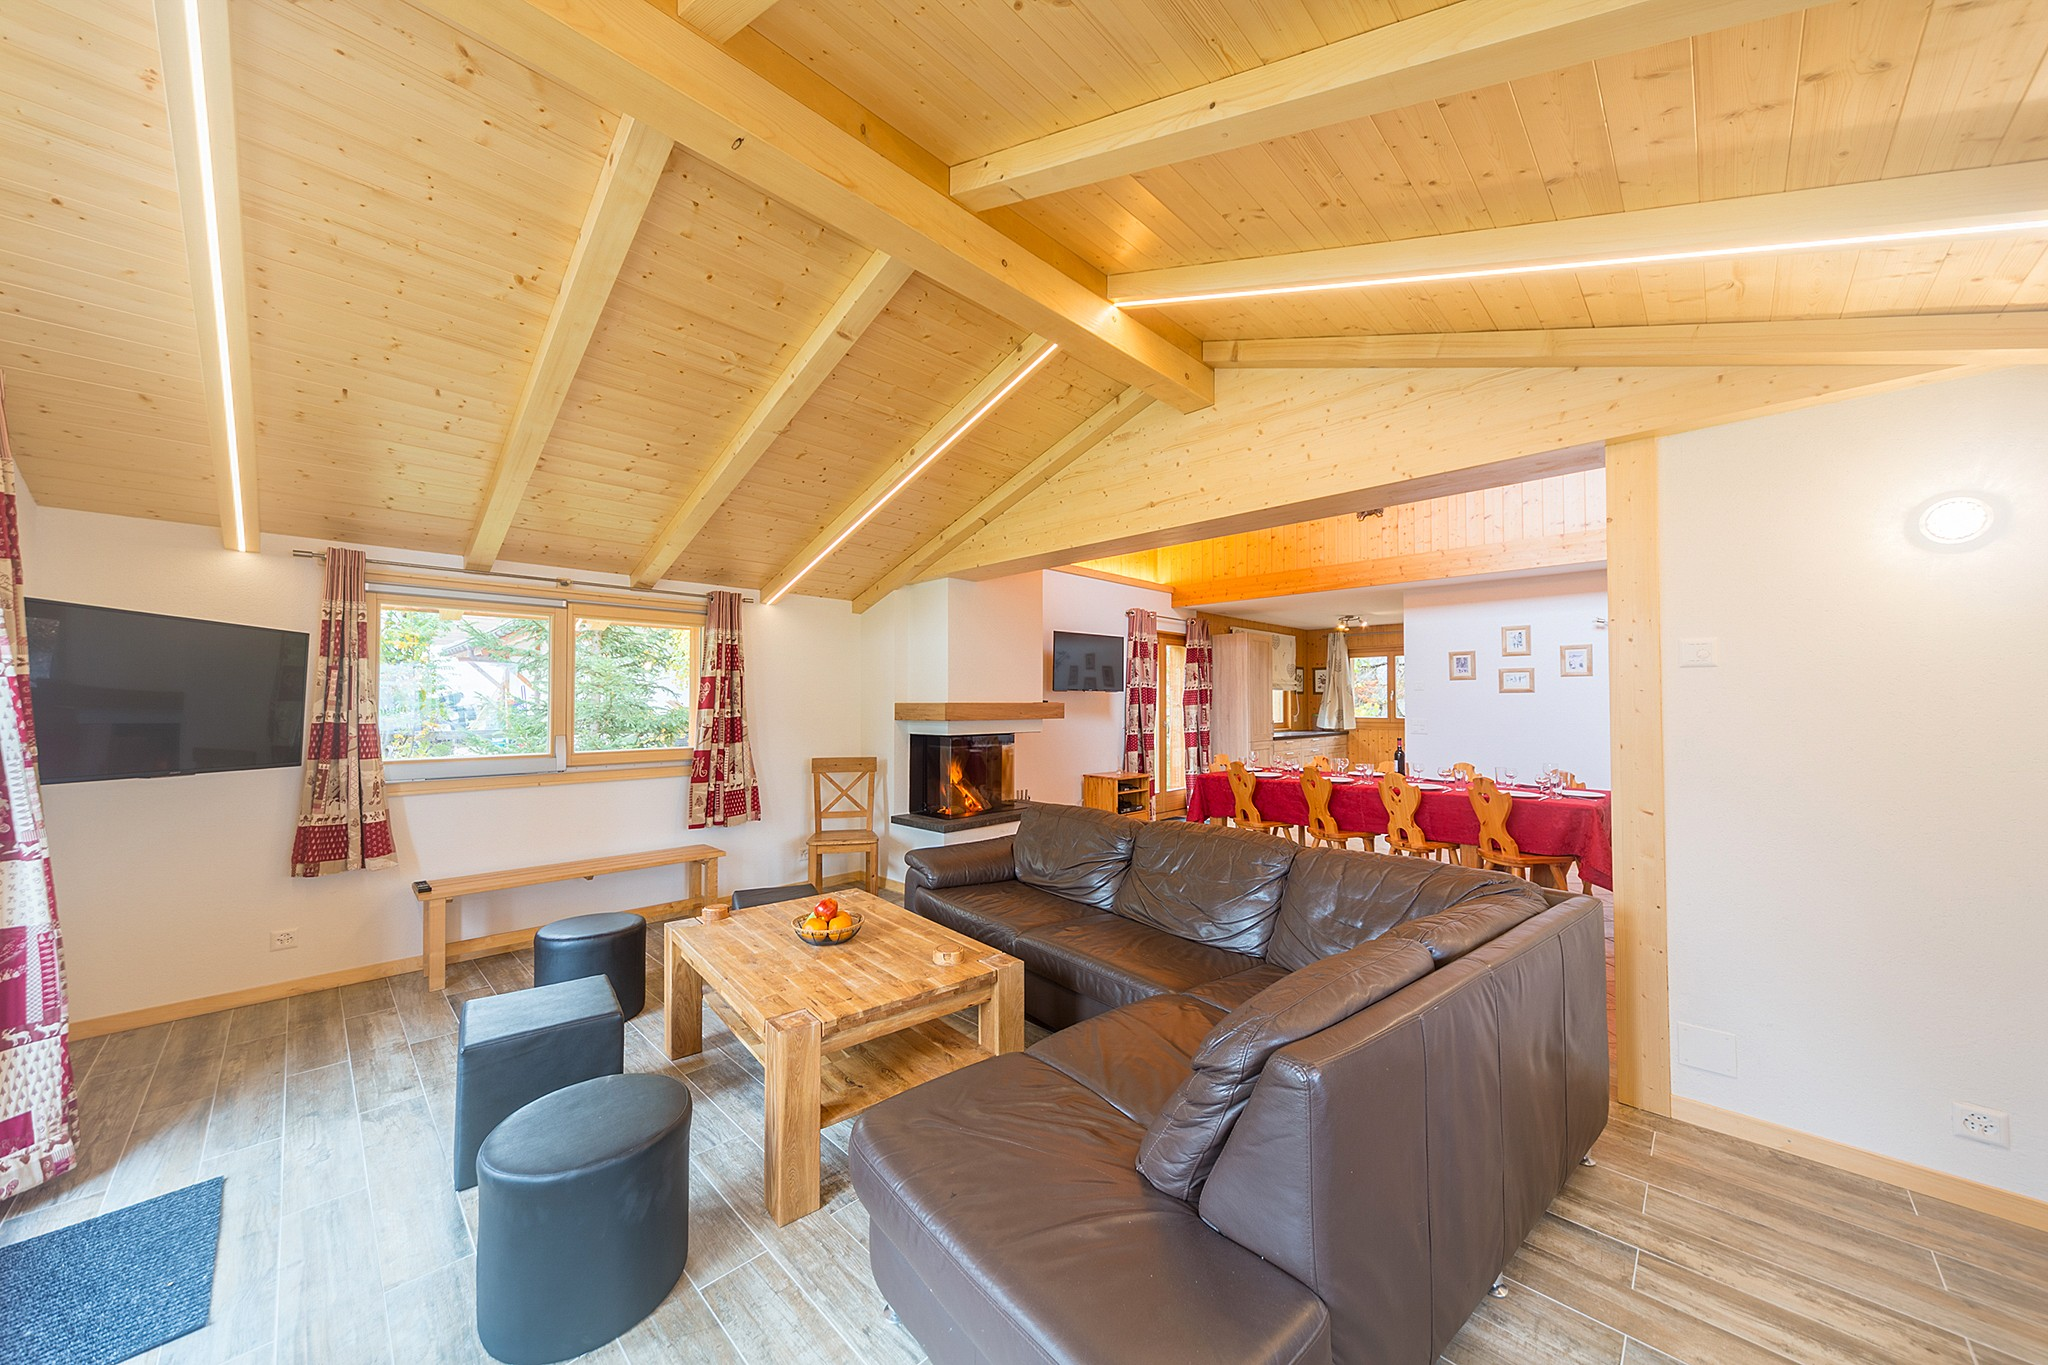 Chalet Pierina - living room